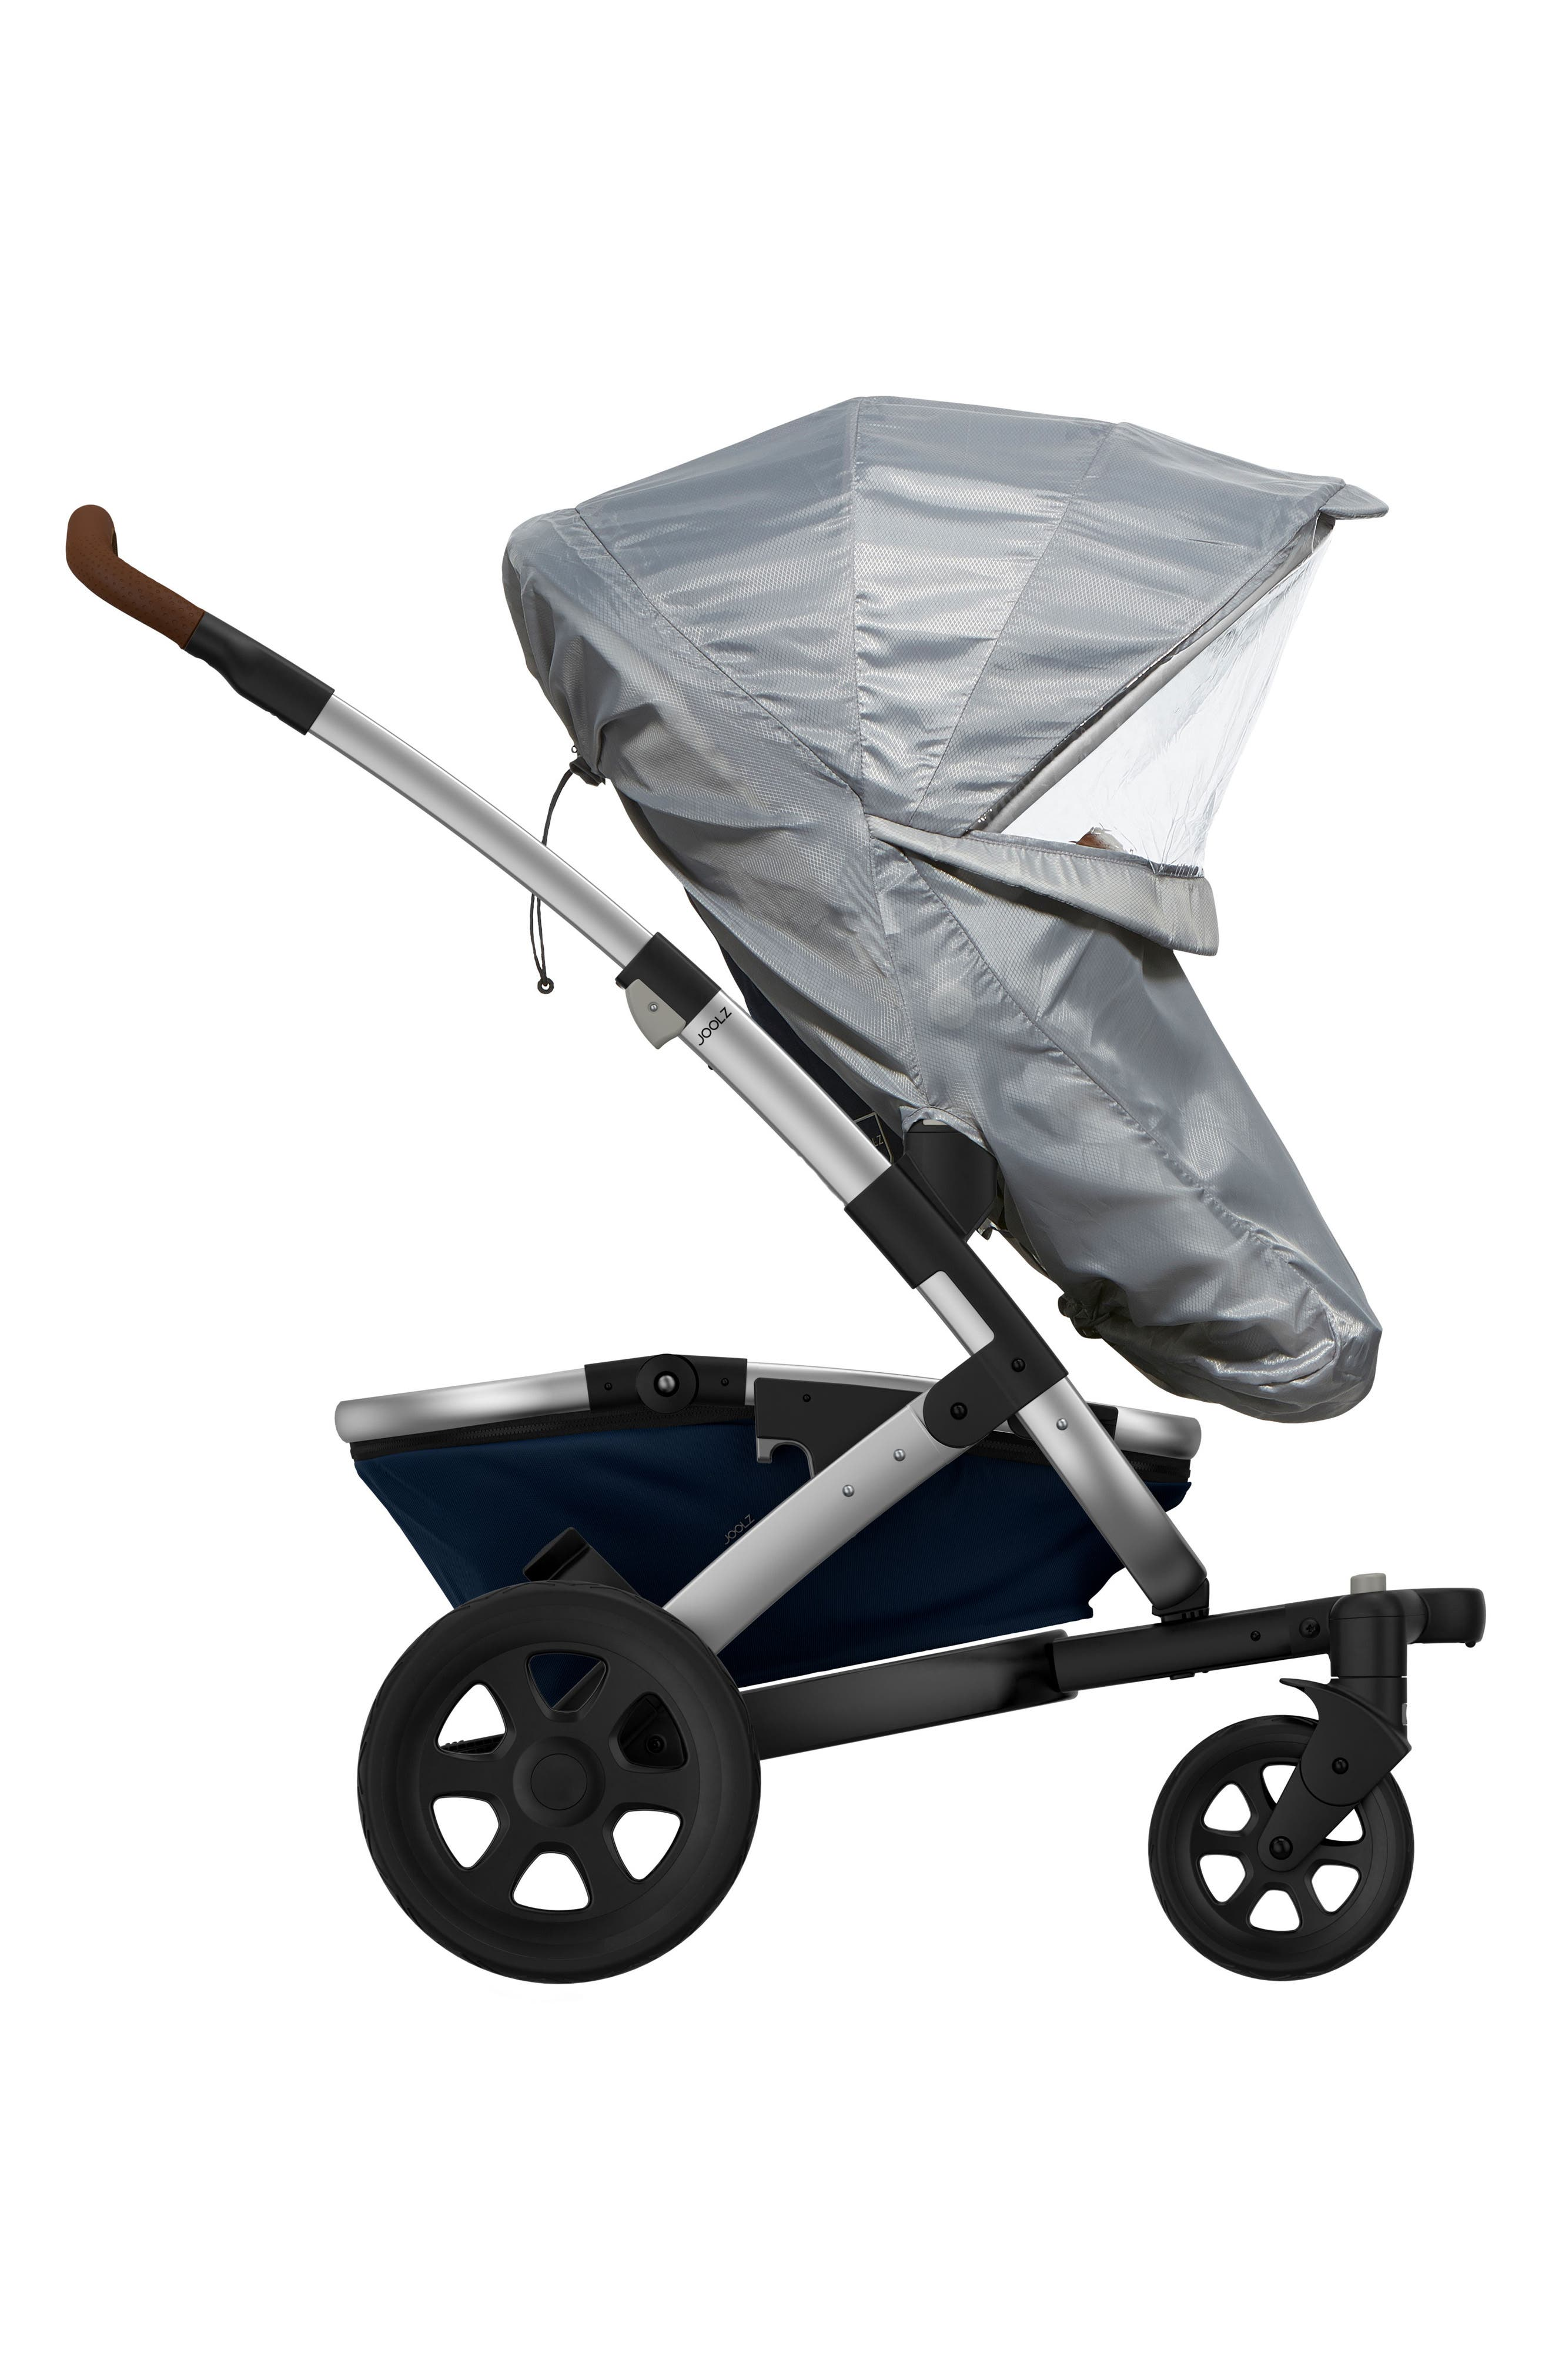 Geo2 Stroller Upper Rain Cover,                             Main thumbnail 1, color,                             GREY/ CLEAR